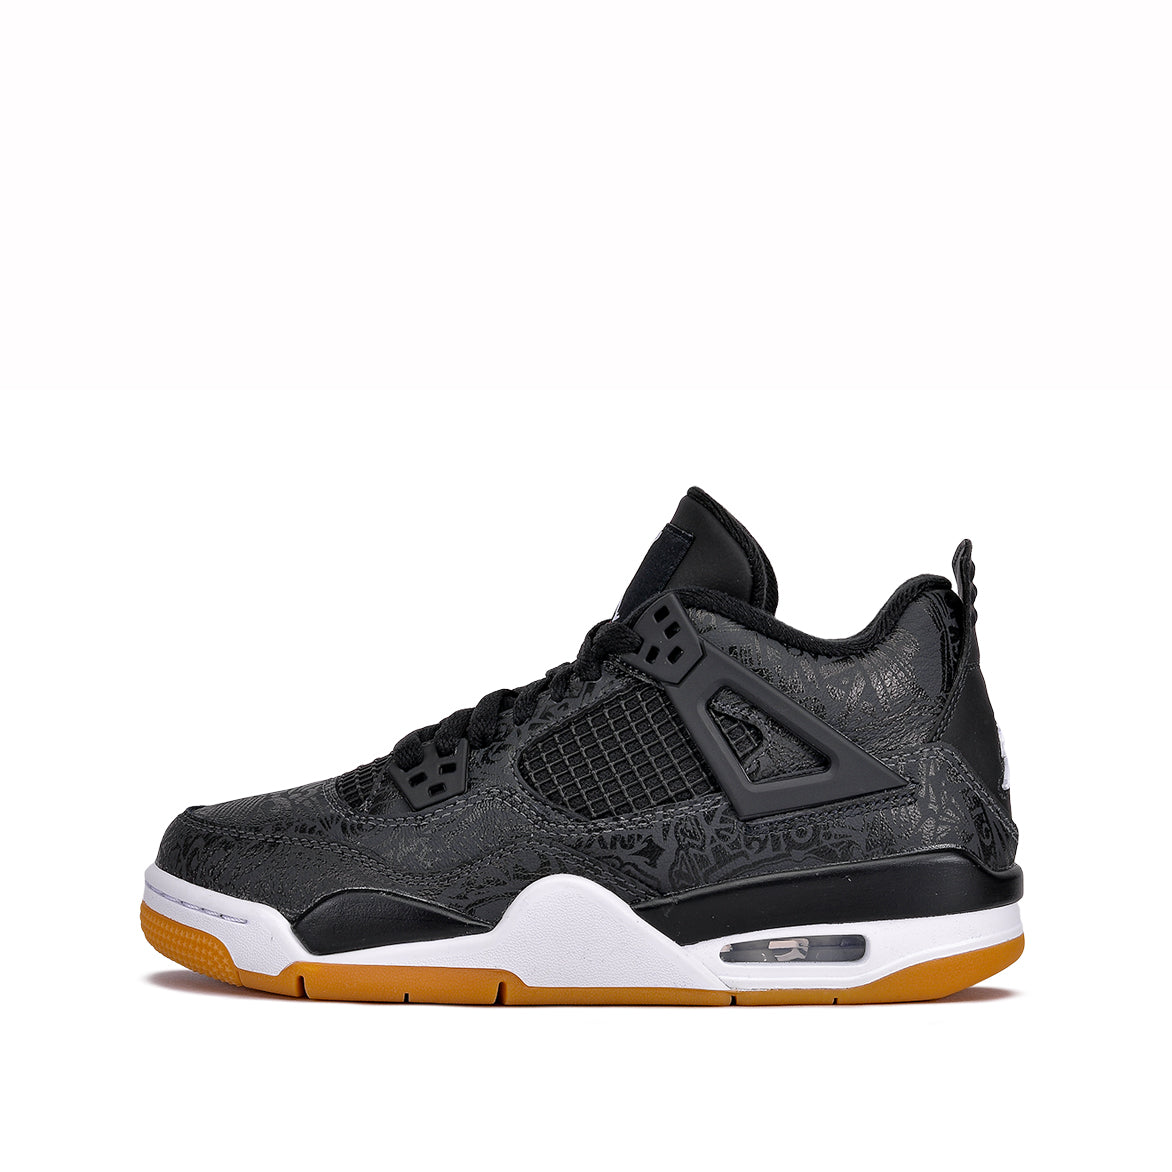 "AIR JORDAN 4 RETRO SE (GS) ""BLACK LASER"""